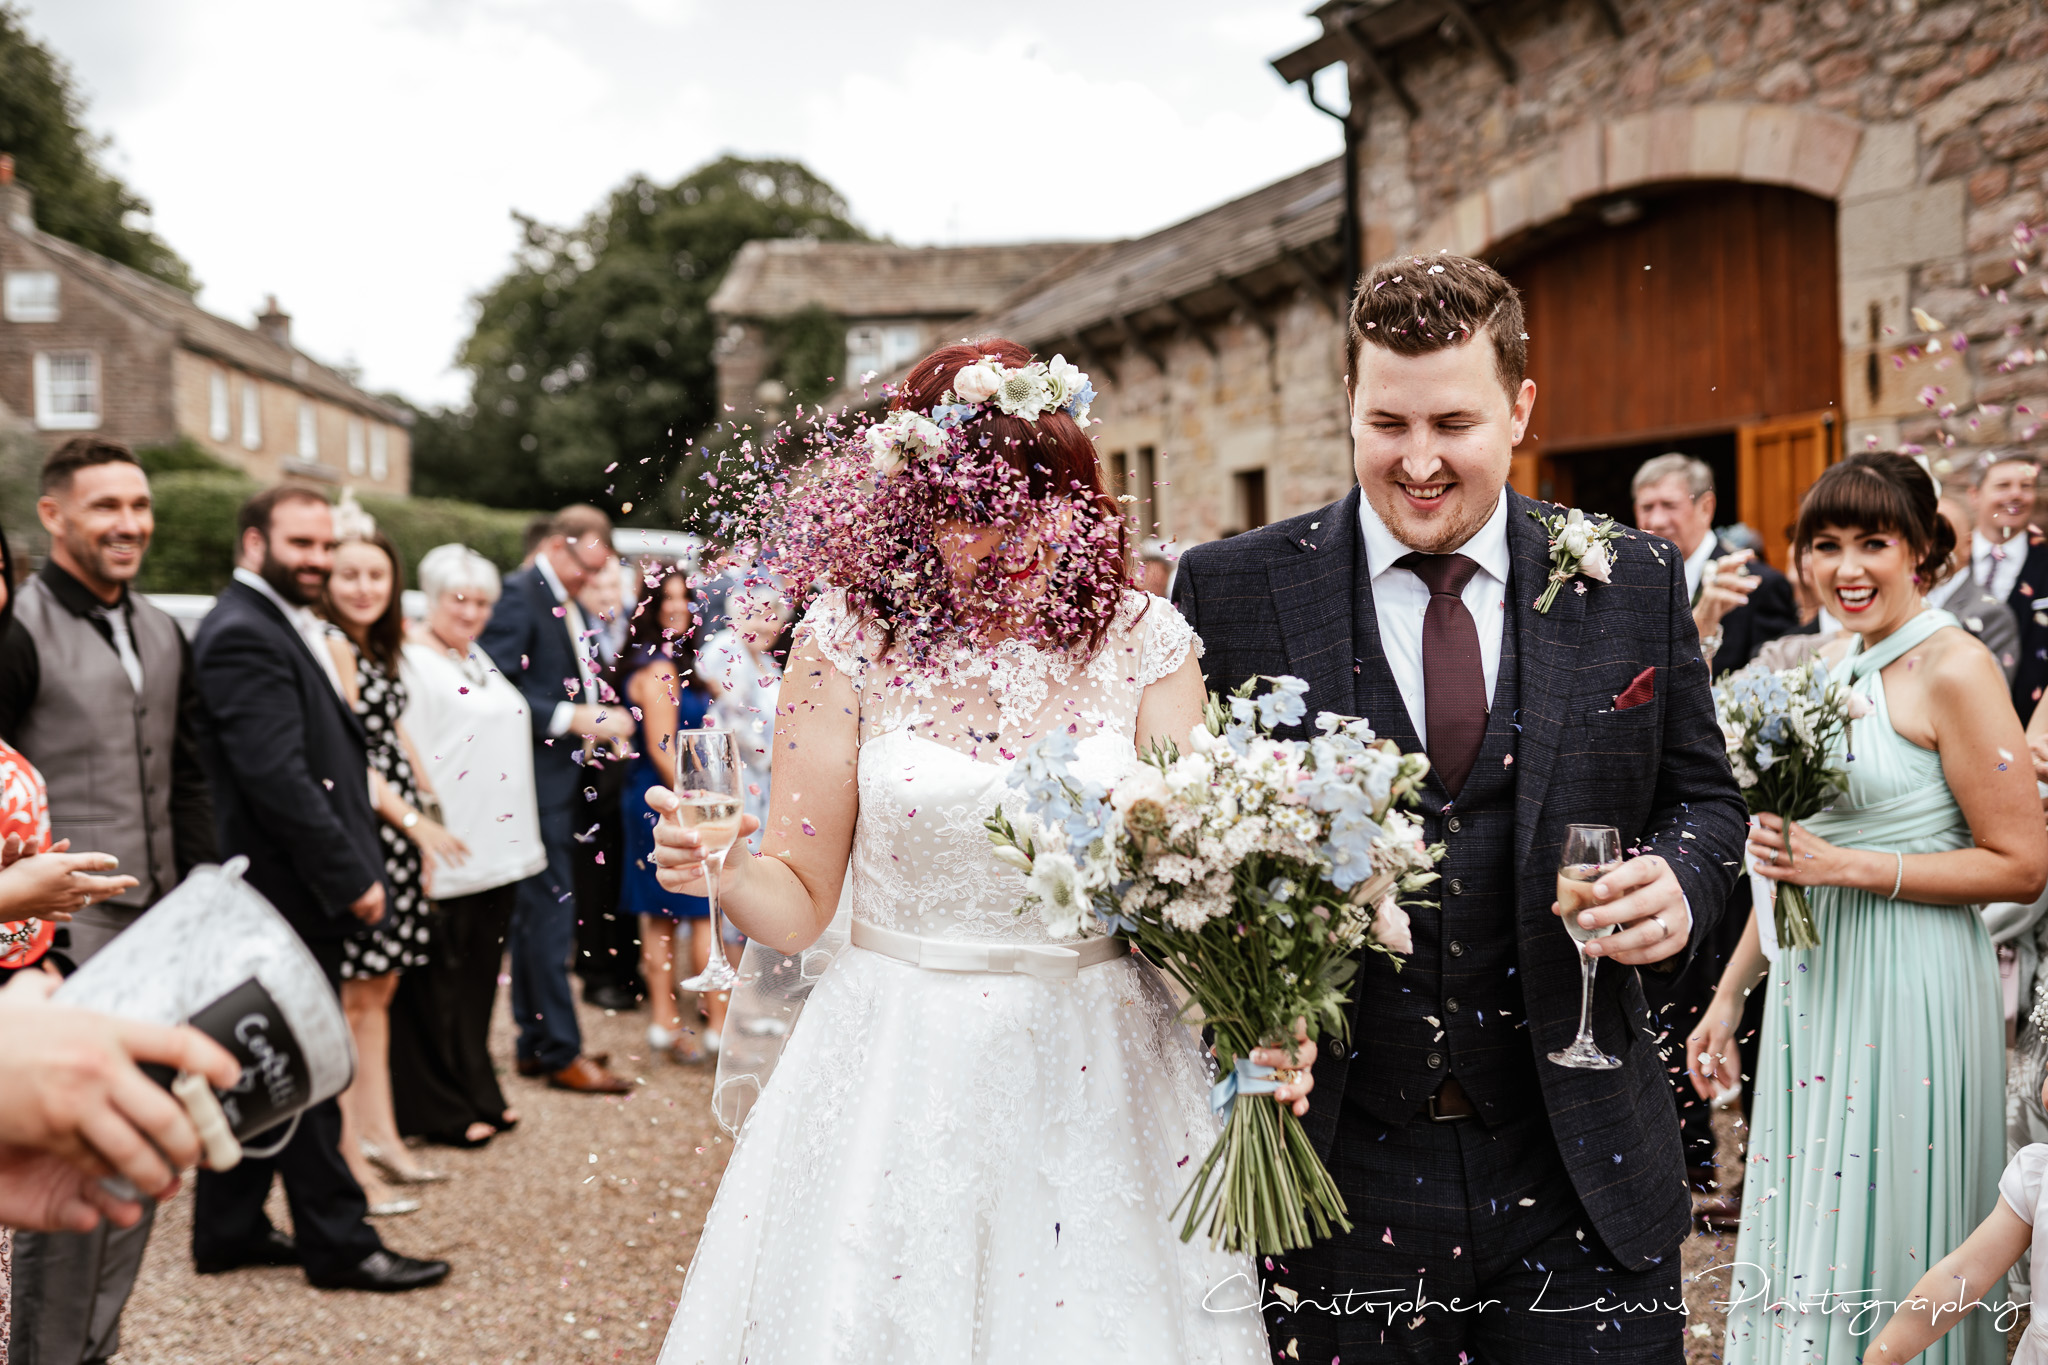 Browsholme Hall Wedding confetti in face